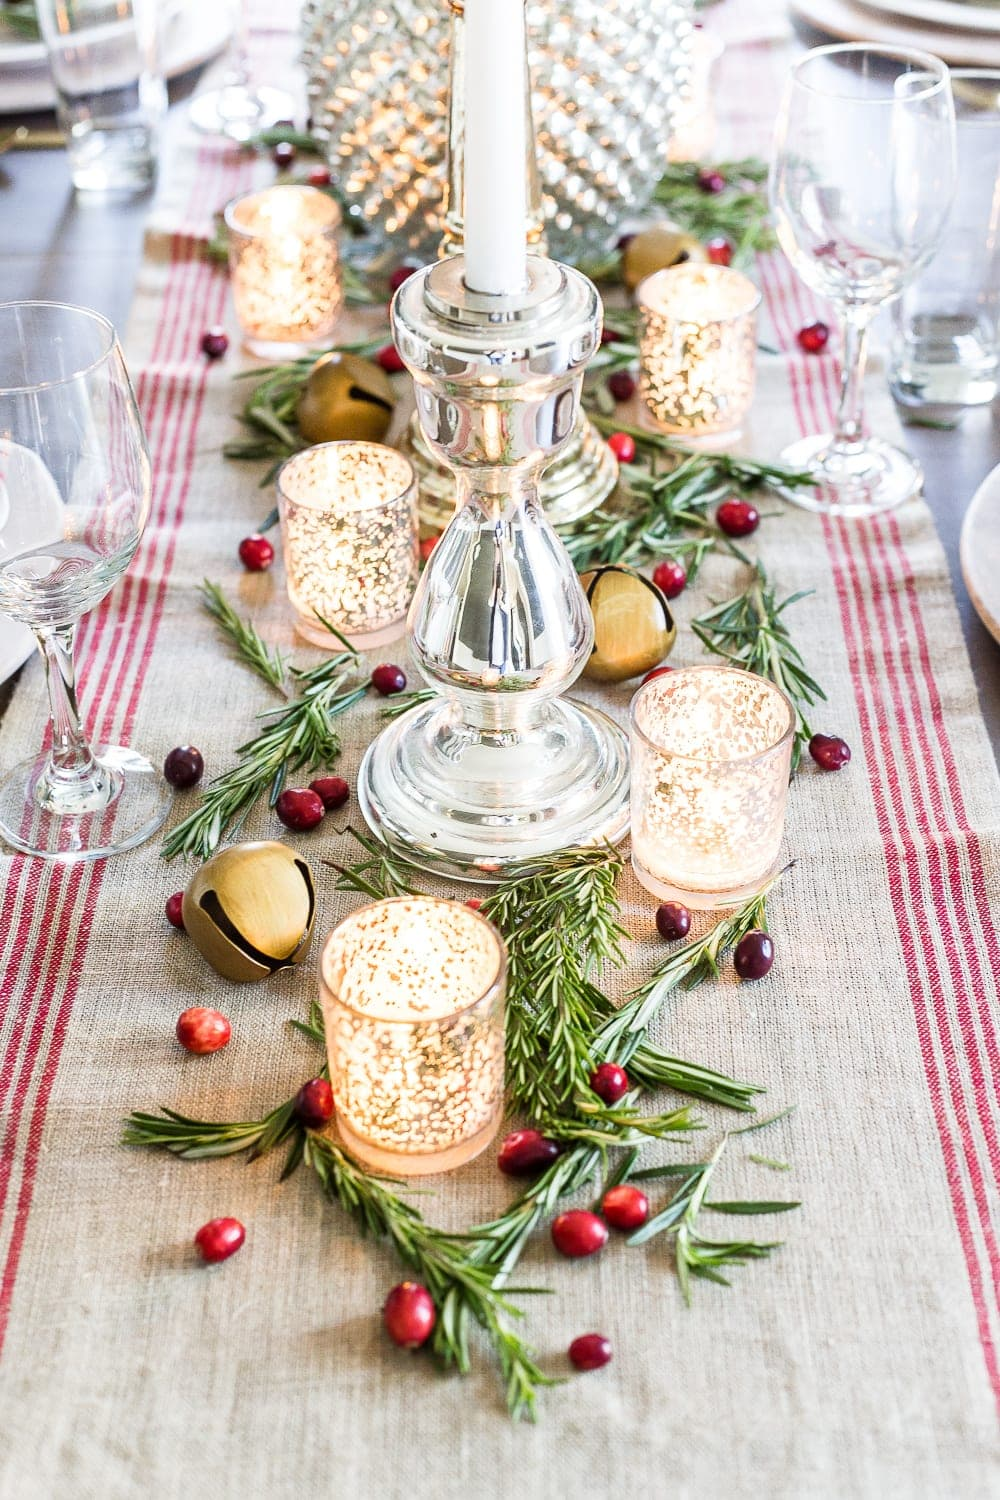 Thrifty Christmas decorating idea: use fresh rosemary and cranberries from the produce aisle to decorate a table